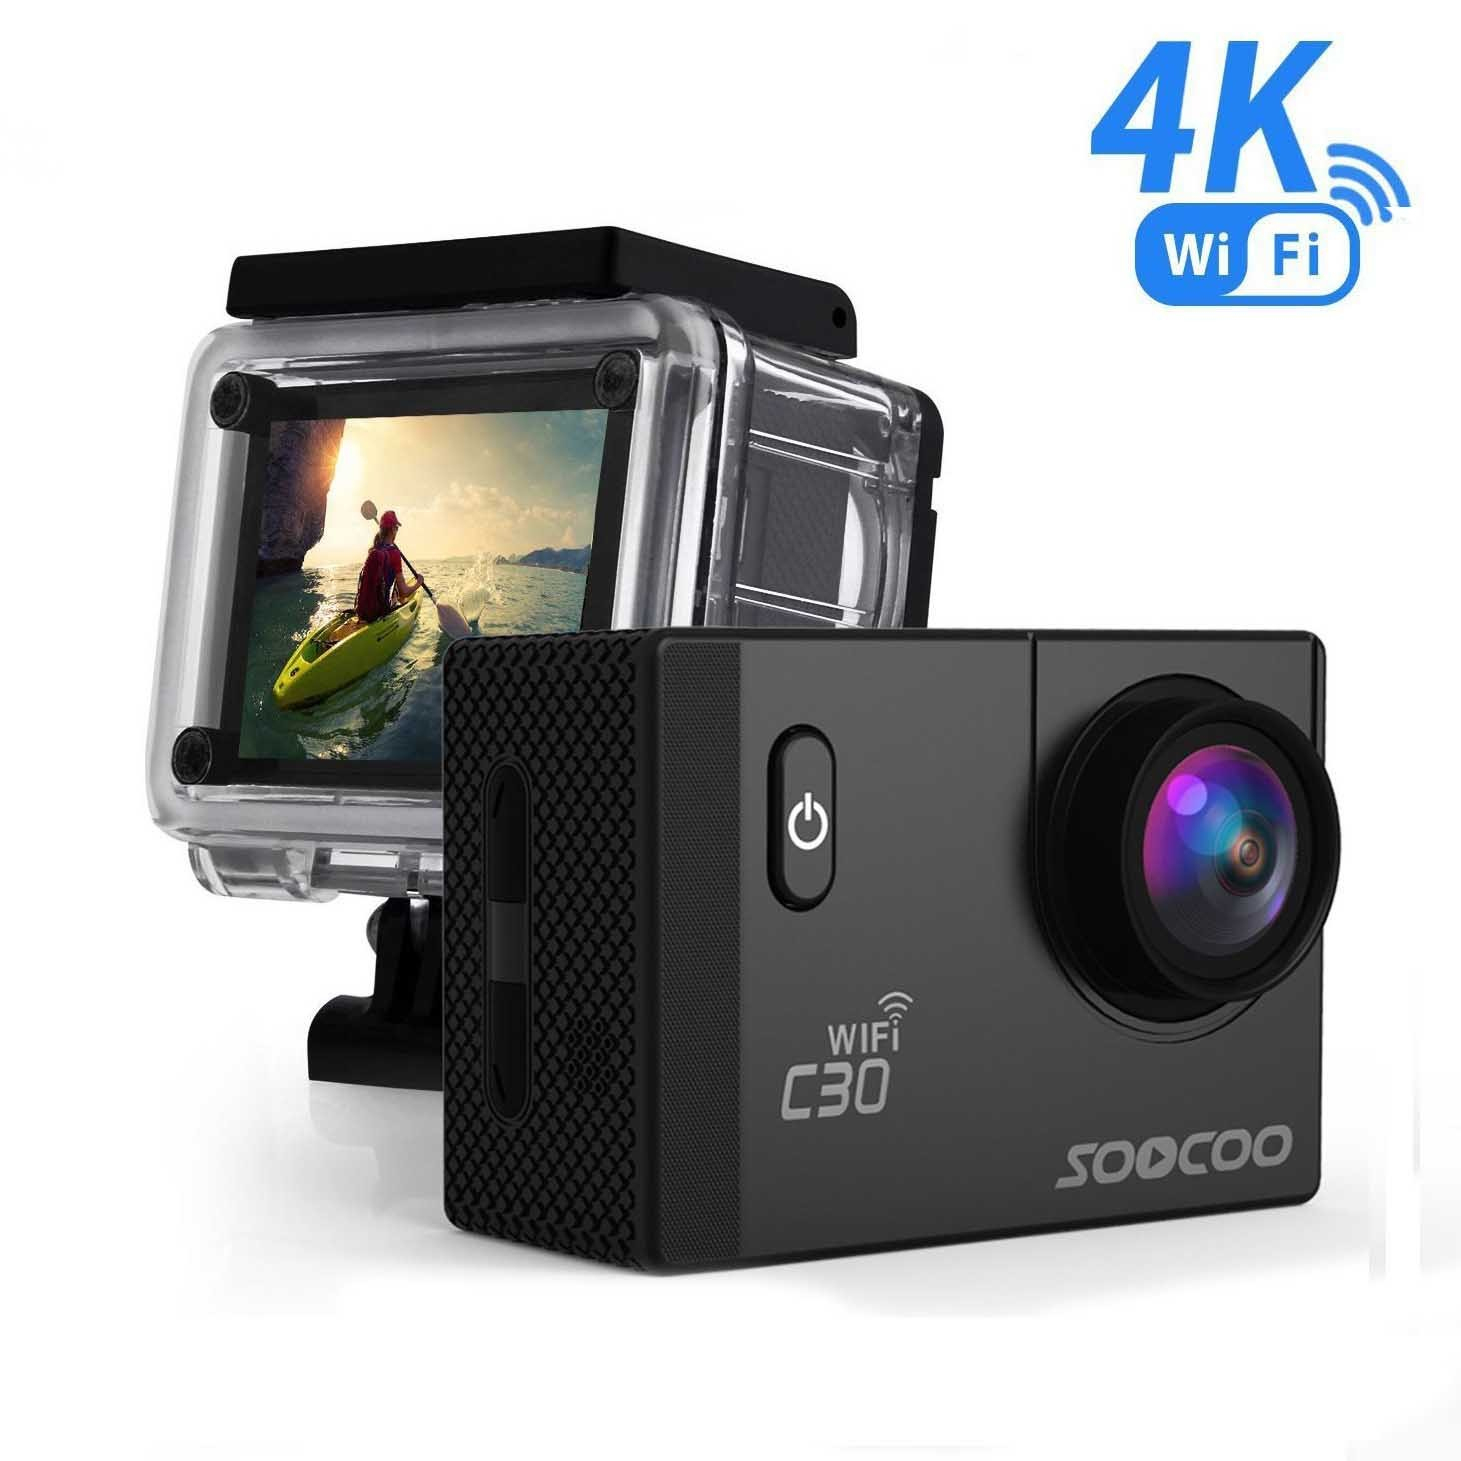 Soocoo C30 Sports Action Camera Wifi 4K 24Fps - 4K Action Camera Micro Usb Wiring Diagram